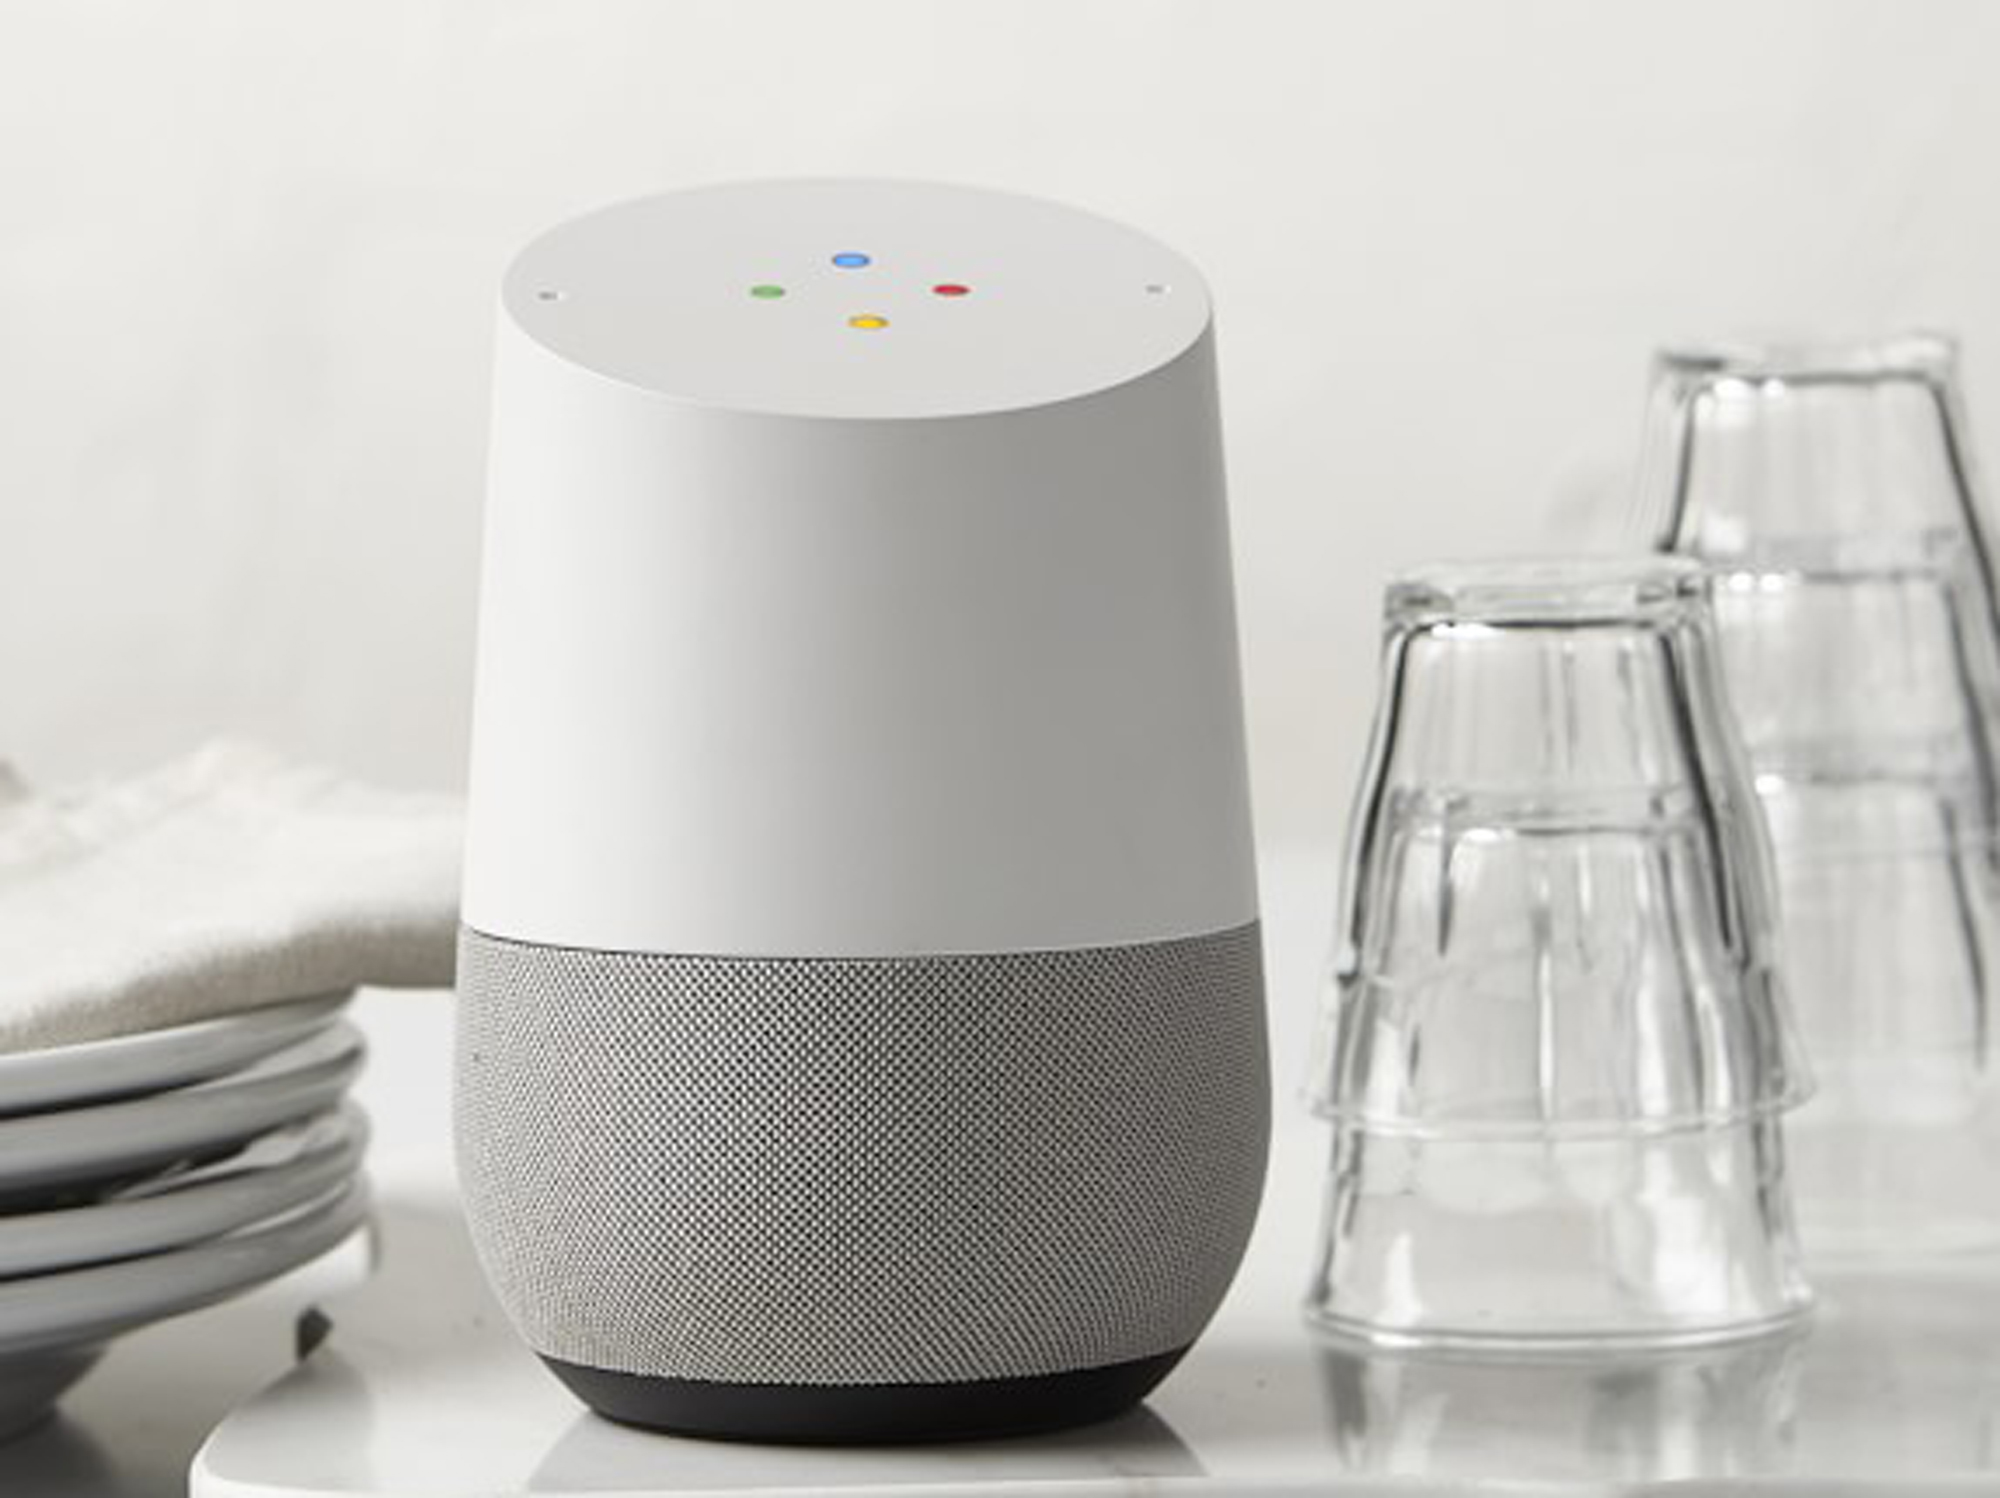 Google Home Williams-Sonoma